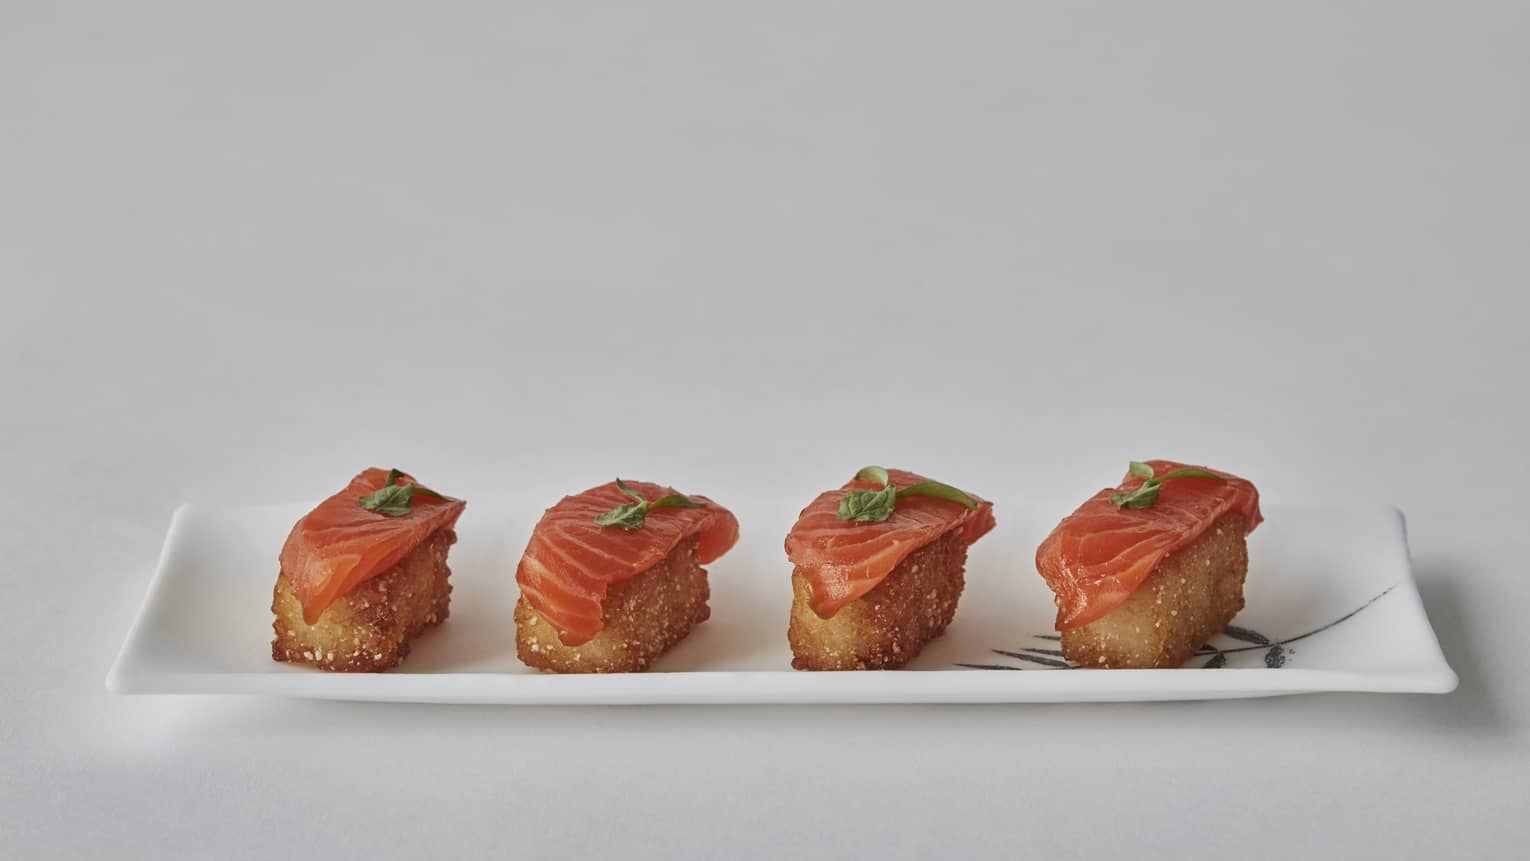 Four salmon bites on a white, rectangular porcelain plate